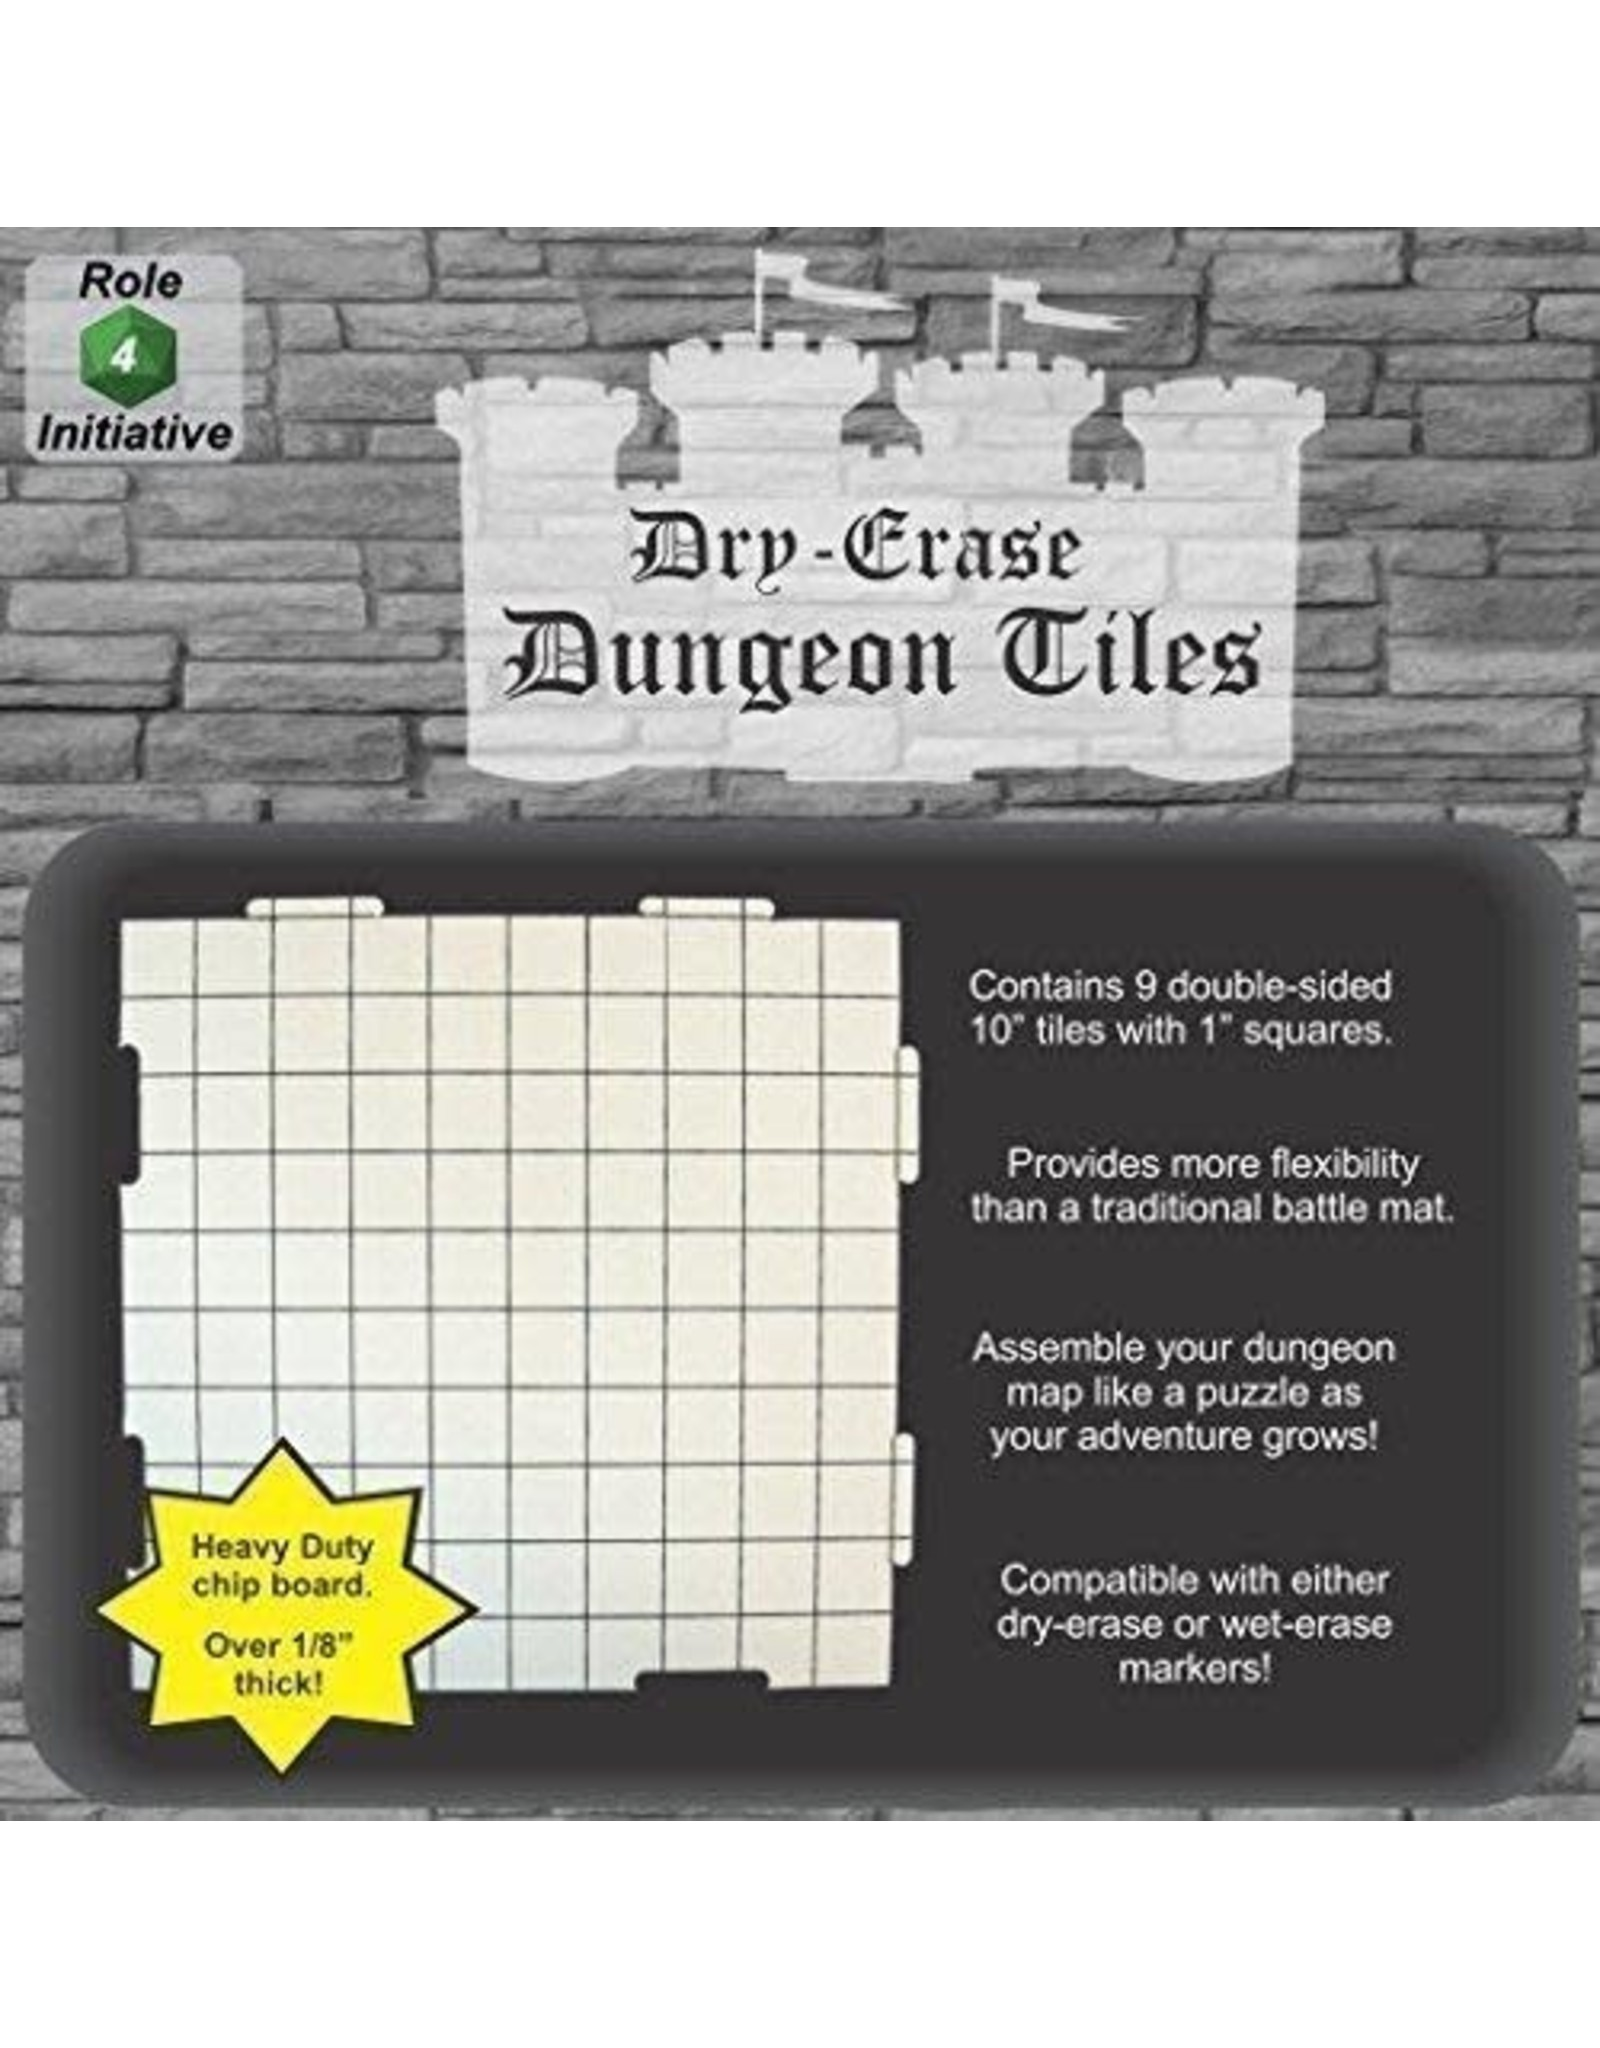 Role 4 Initiative Dry Erase Dungeon Tiles - 10 inch Interlocking Tiles 9 pack